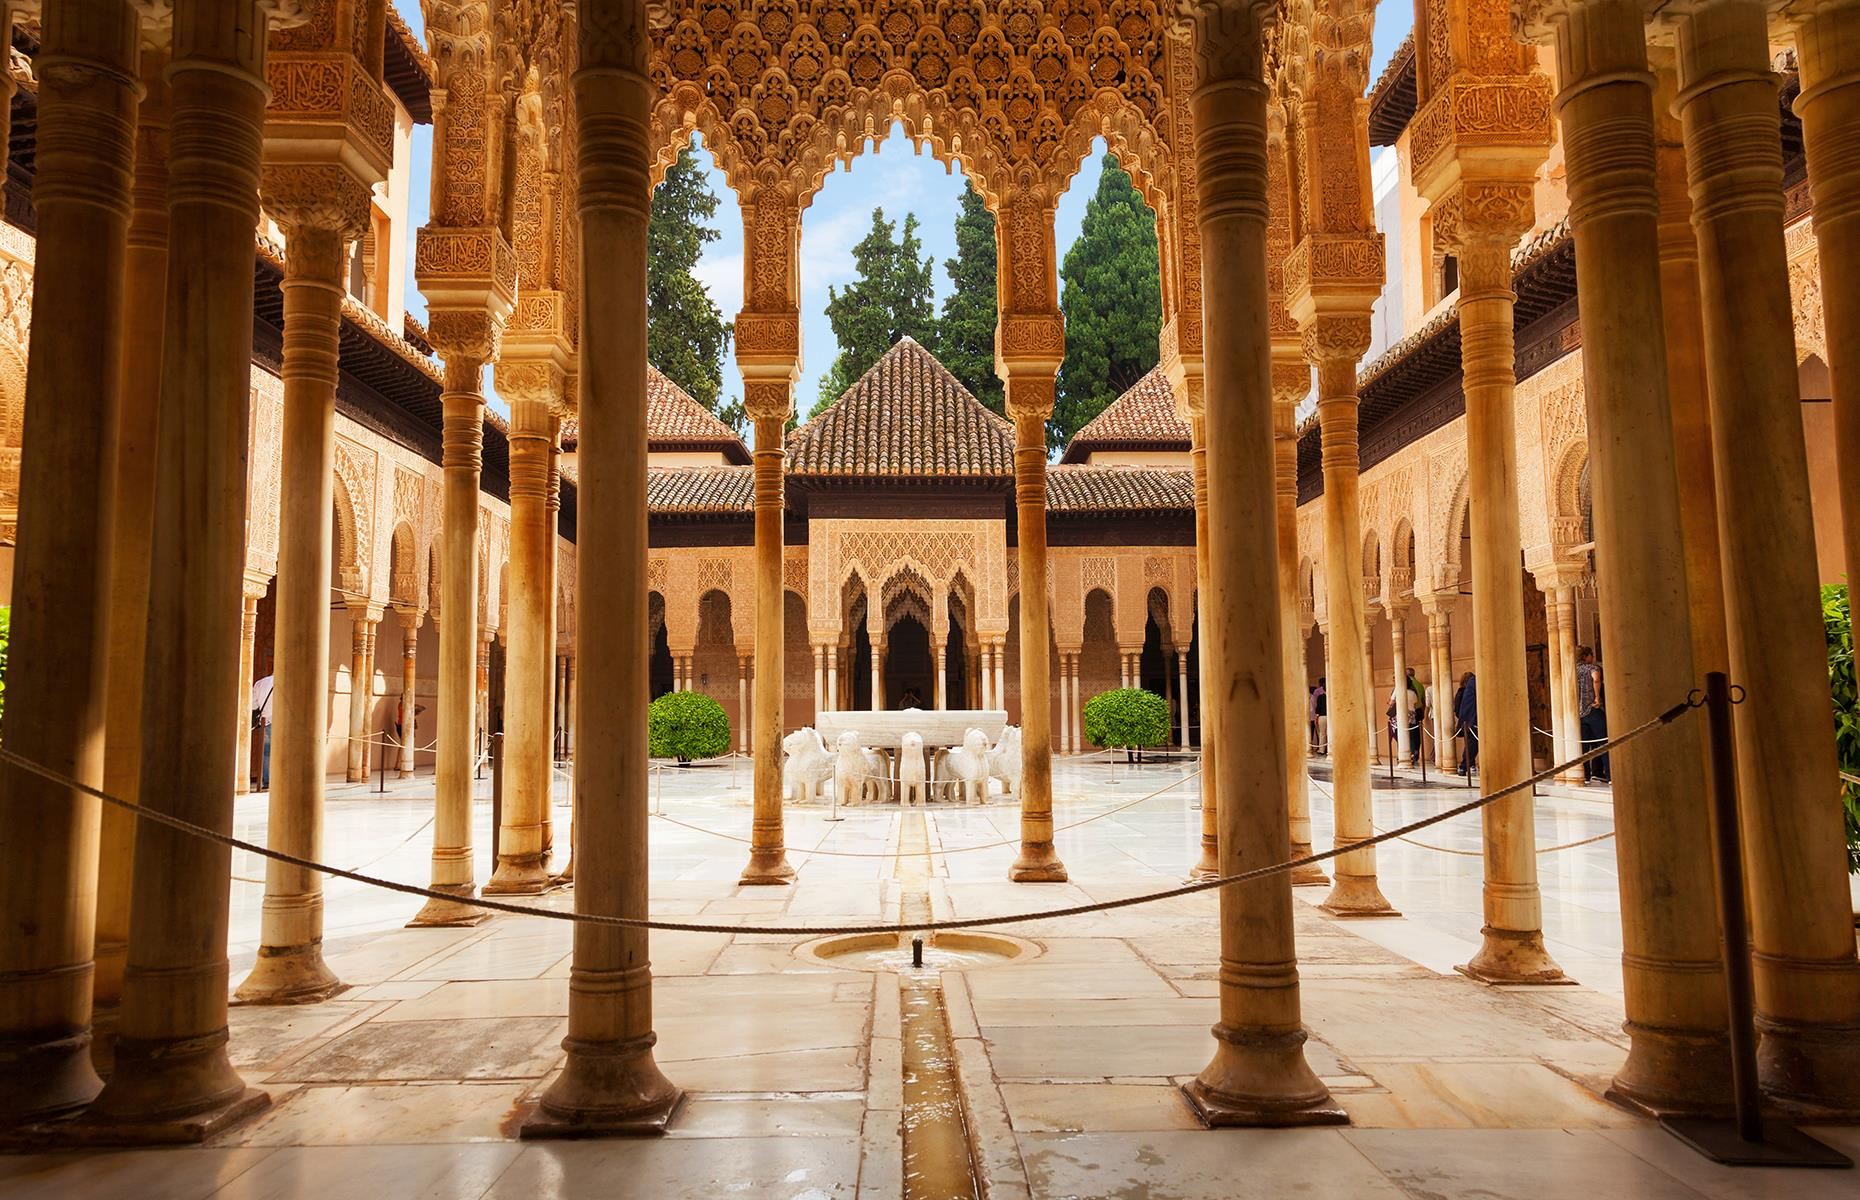 Slide 52 of 53: The Alhambra served as a royal palace and its exquisite gardens are home to many beautiful walkways and fountains. A palace and fortress complex rather than an individual stately home, Alhambra consists of a royal complex, several courts and halls and a collection of outlying buildings.Discover more secrets of the world's incredible castles